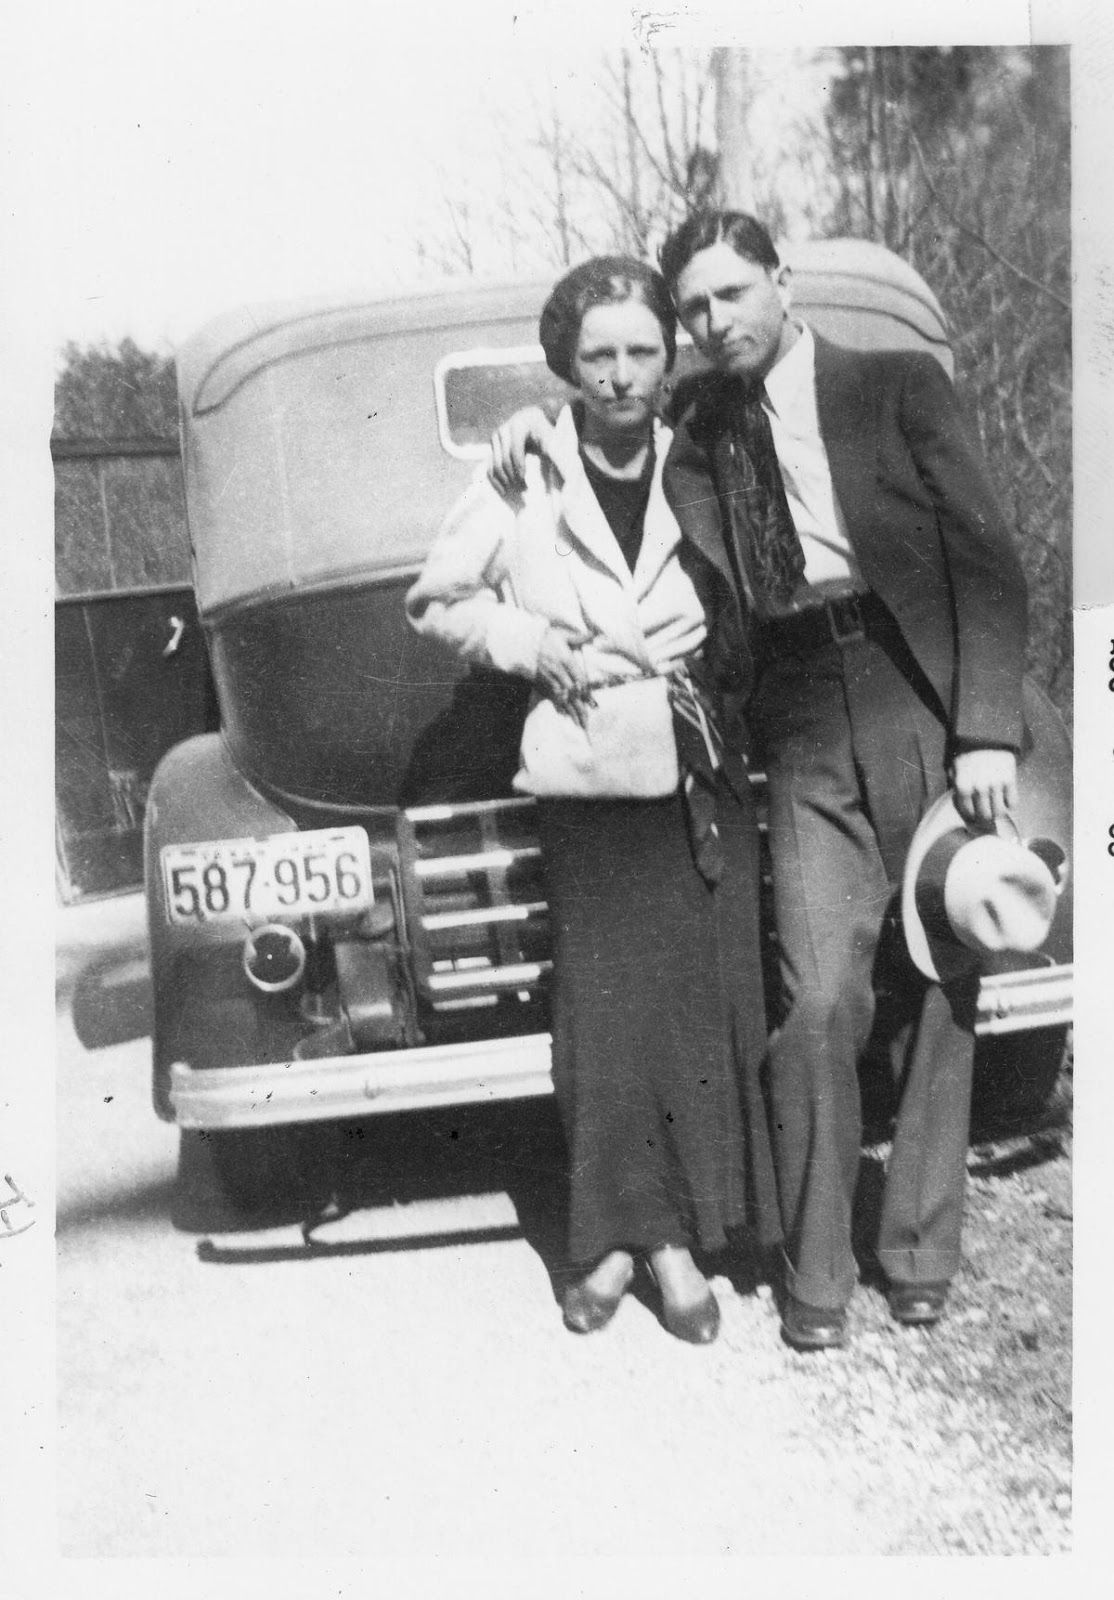 Bonnie And Clyde 13 Things You May Not Know About This Americas Most Infamous Outlaw Couple